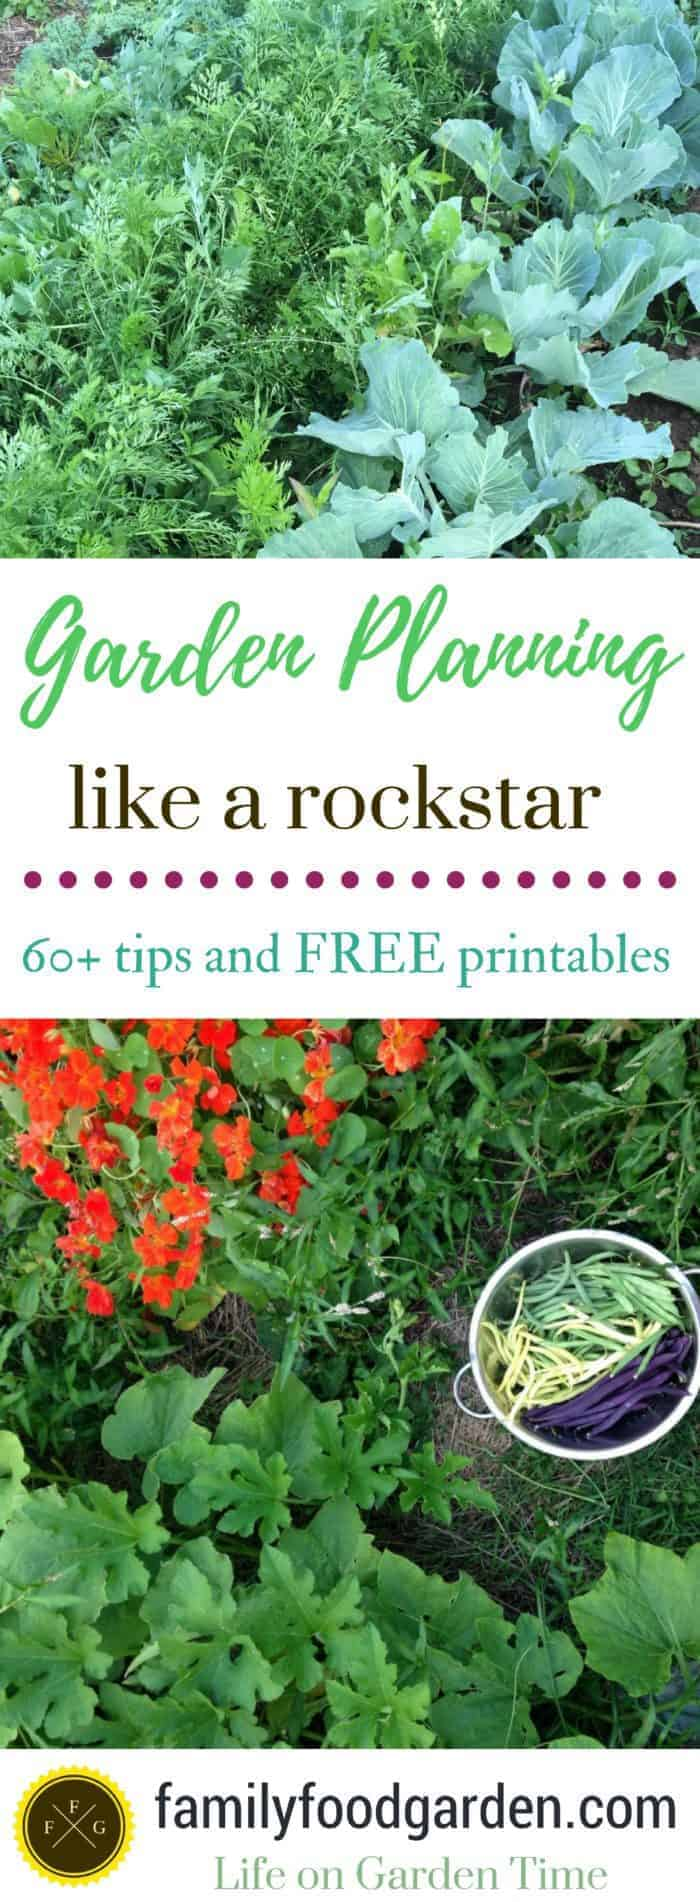 Plant a fantastic garden with this great garden planning resource